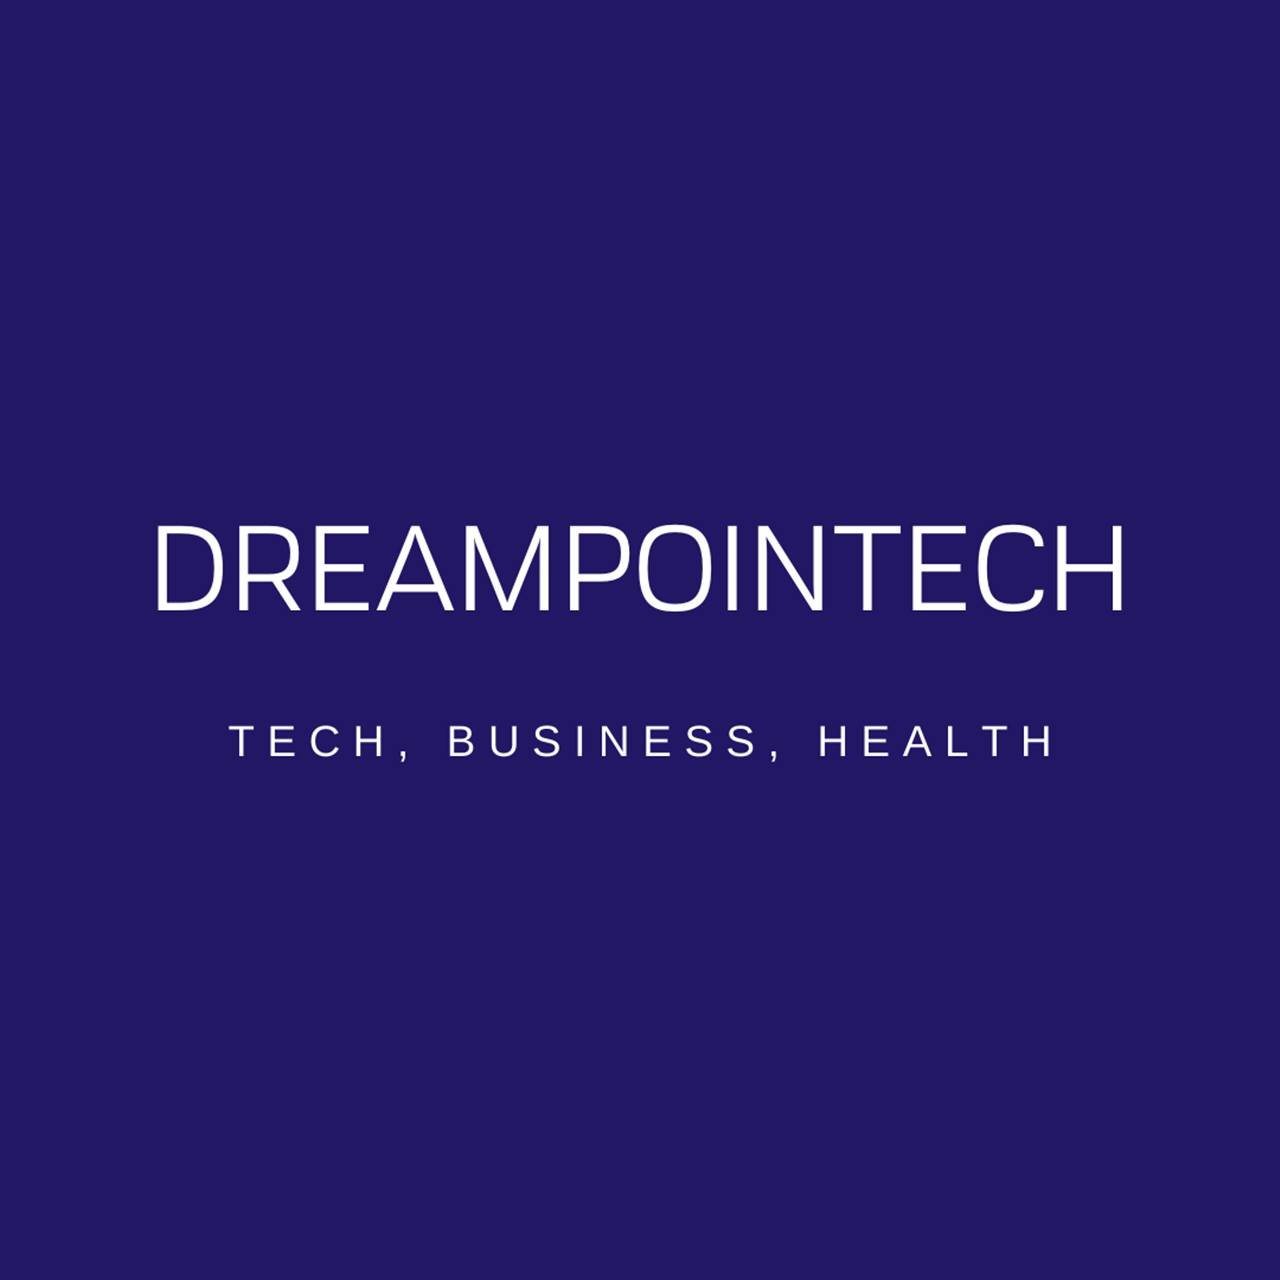 DreamPoinTech: Tech, Business, Health